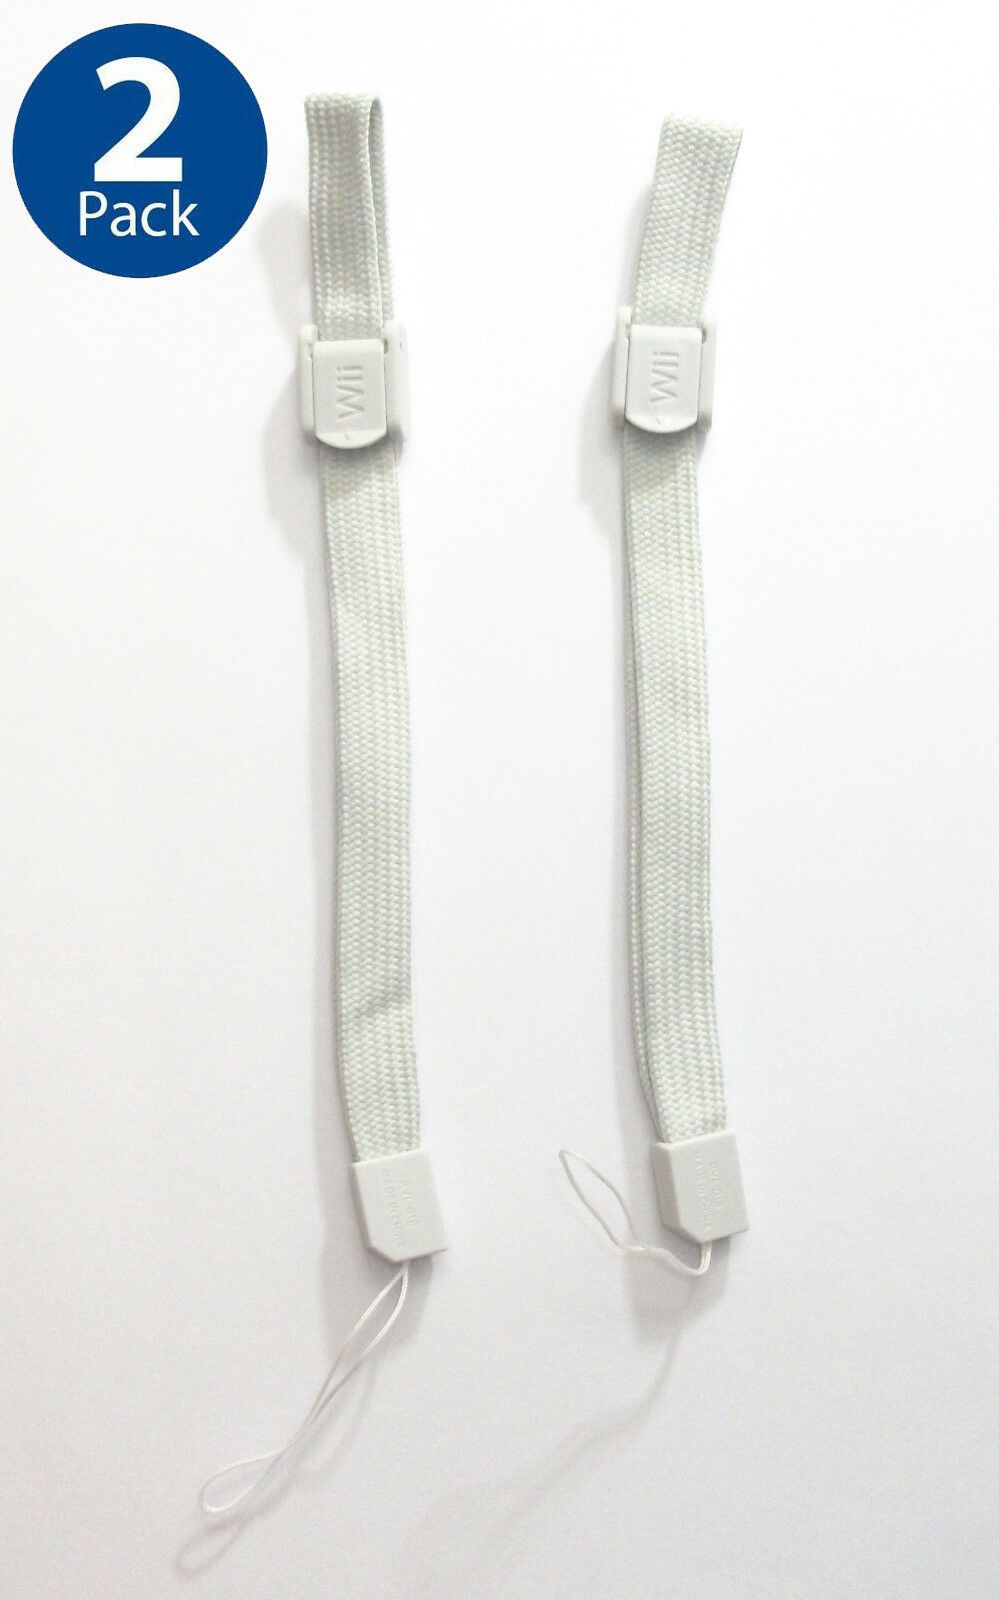 USA SELLER OFFICIAL Wii Wii U Wrist Strap Hand Strap Lanyard GRAY GREY LOT of 2